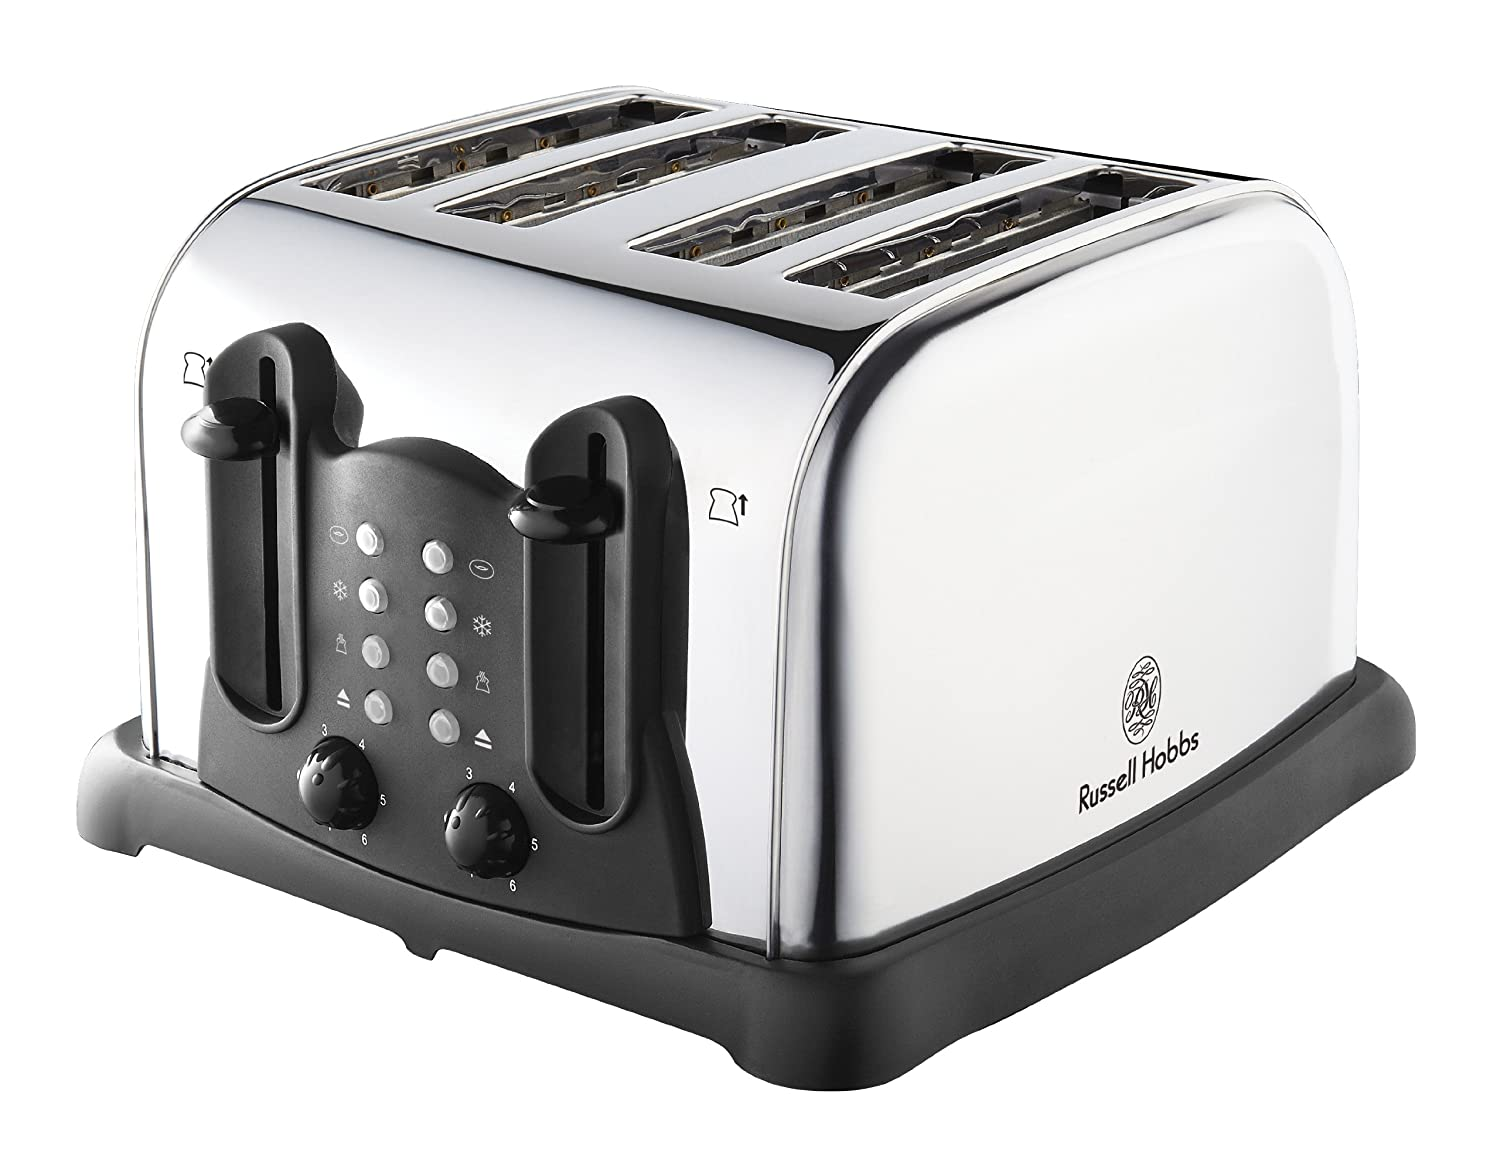 russell hobbs 18099 edelstahl silber 4 scheiben toaster k chenger t grill ebay. Black Bedroom Furniture Sets. Home Design Ideas